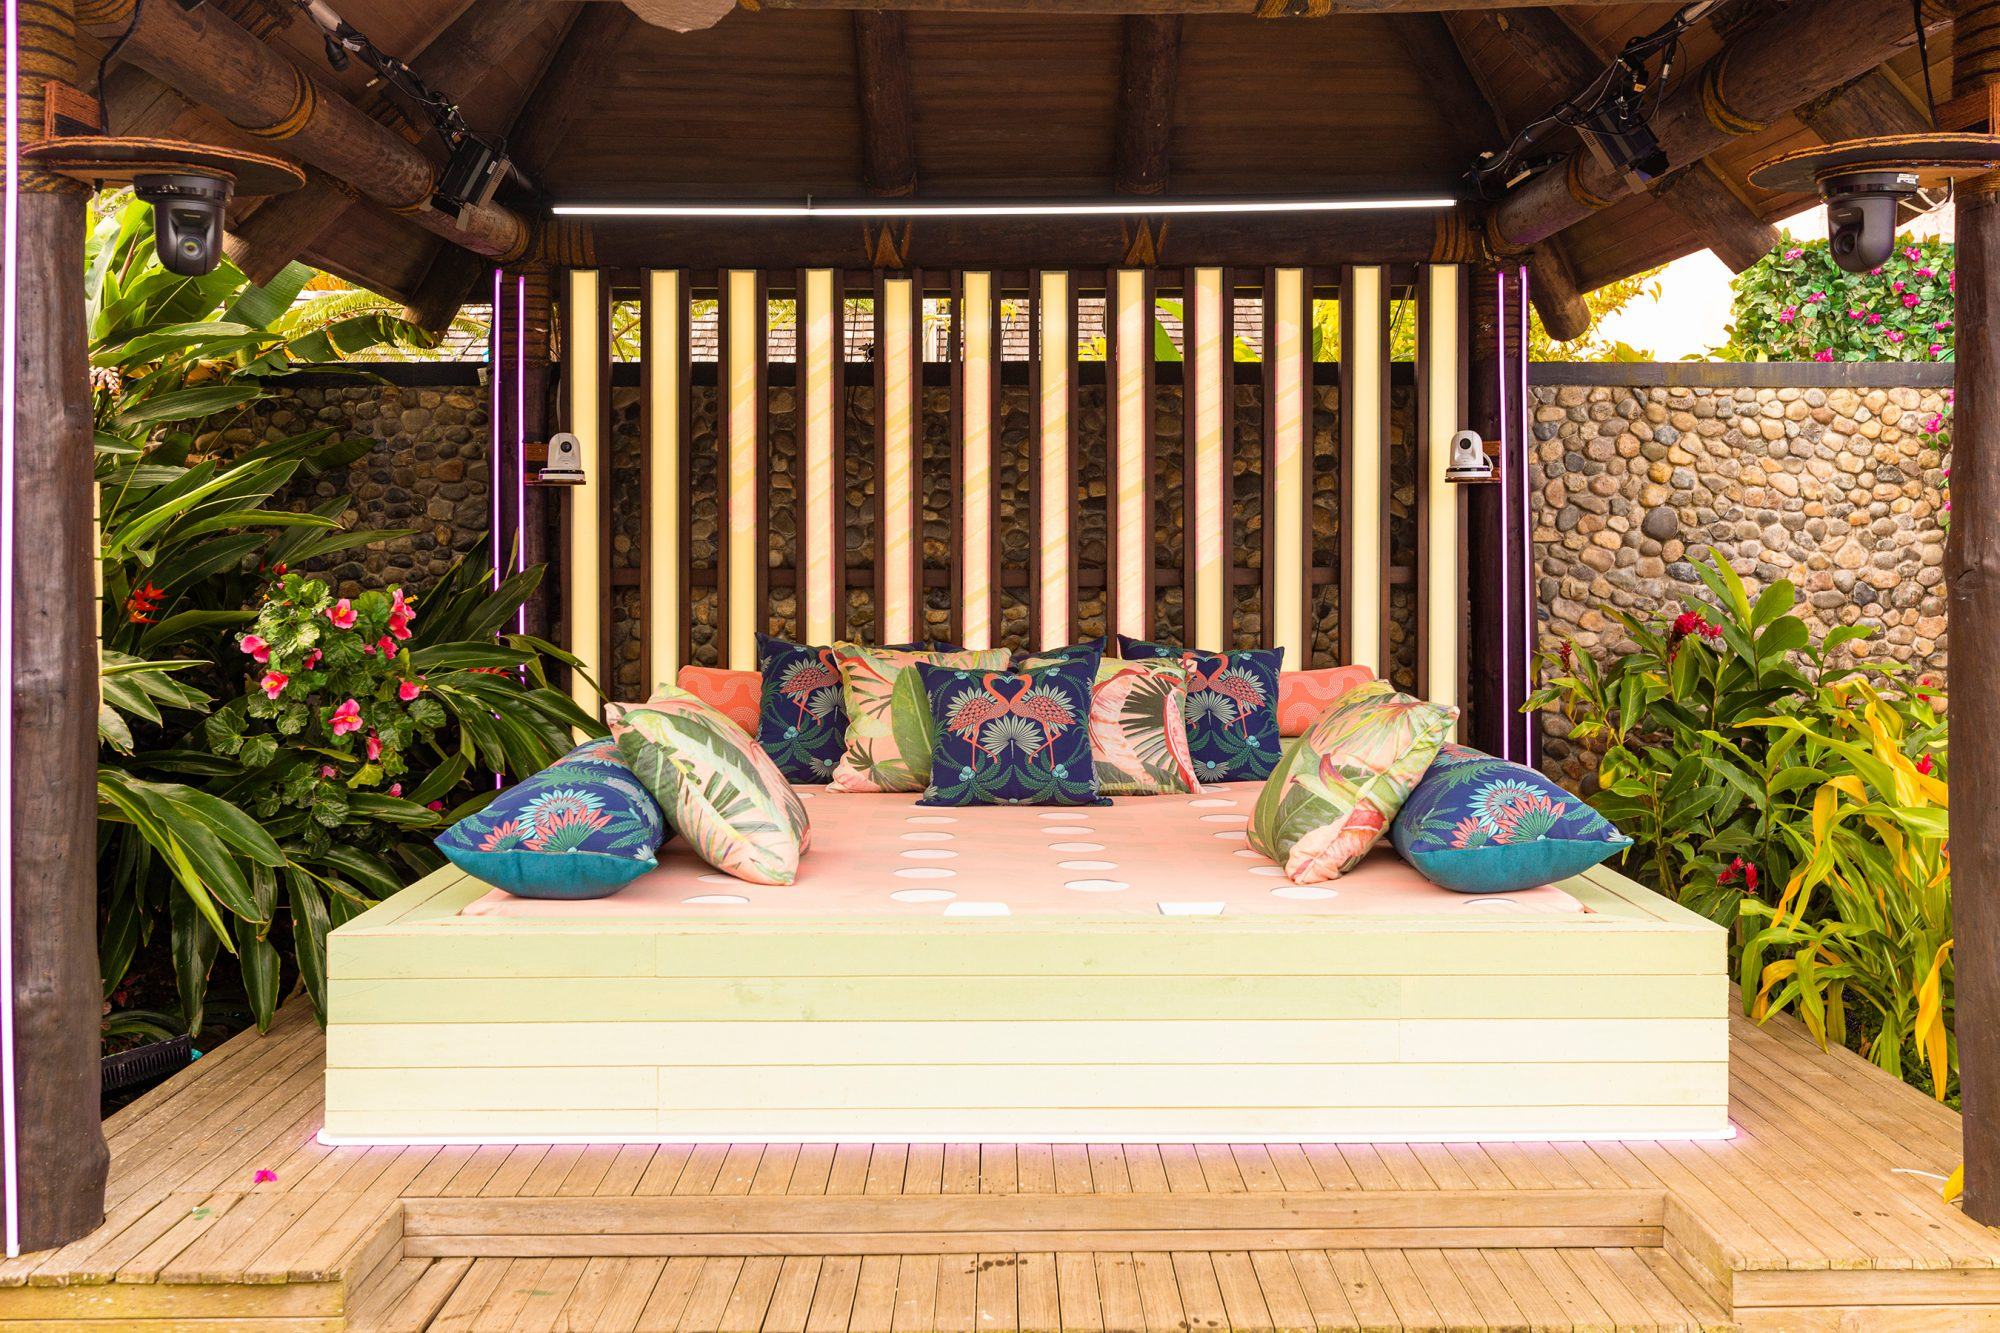 LOVE ISLAND's stunning Fijian Villa that the Islanders will call home this summer. Islanders can spend a special night in the hideaway designed by Jonathan Adler, lounge on the patio by the pool or get ready for a date in the dressing room that overlooks the ocean.